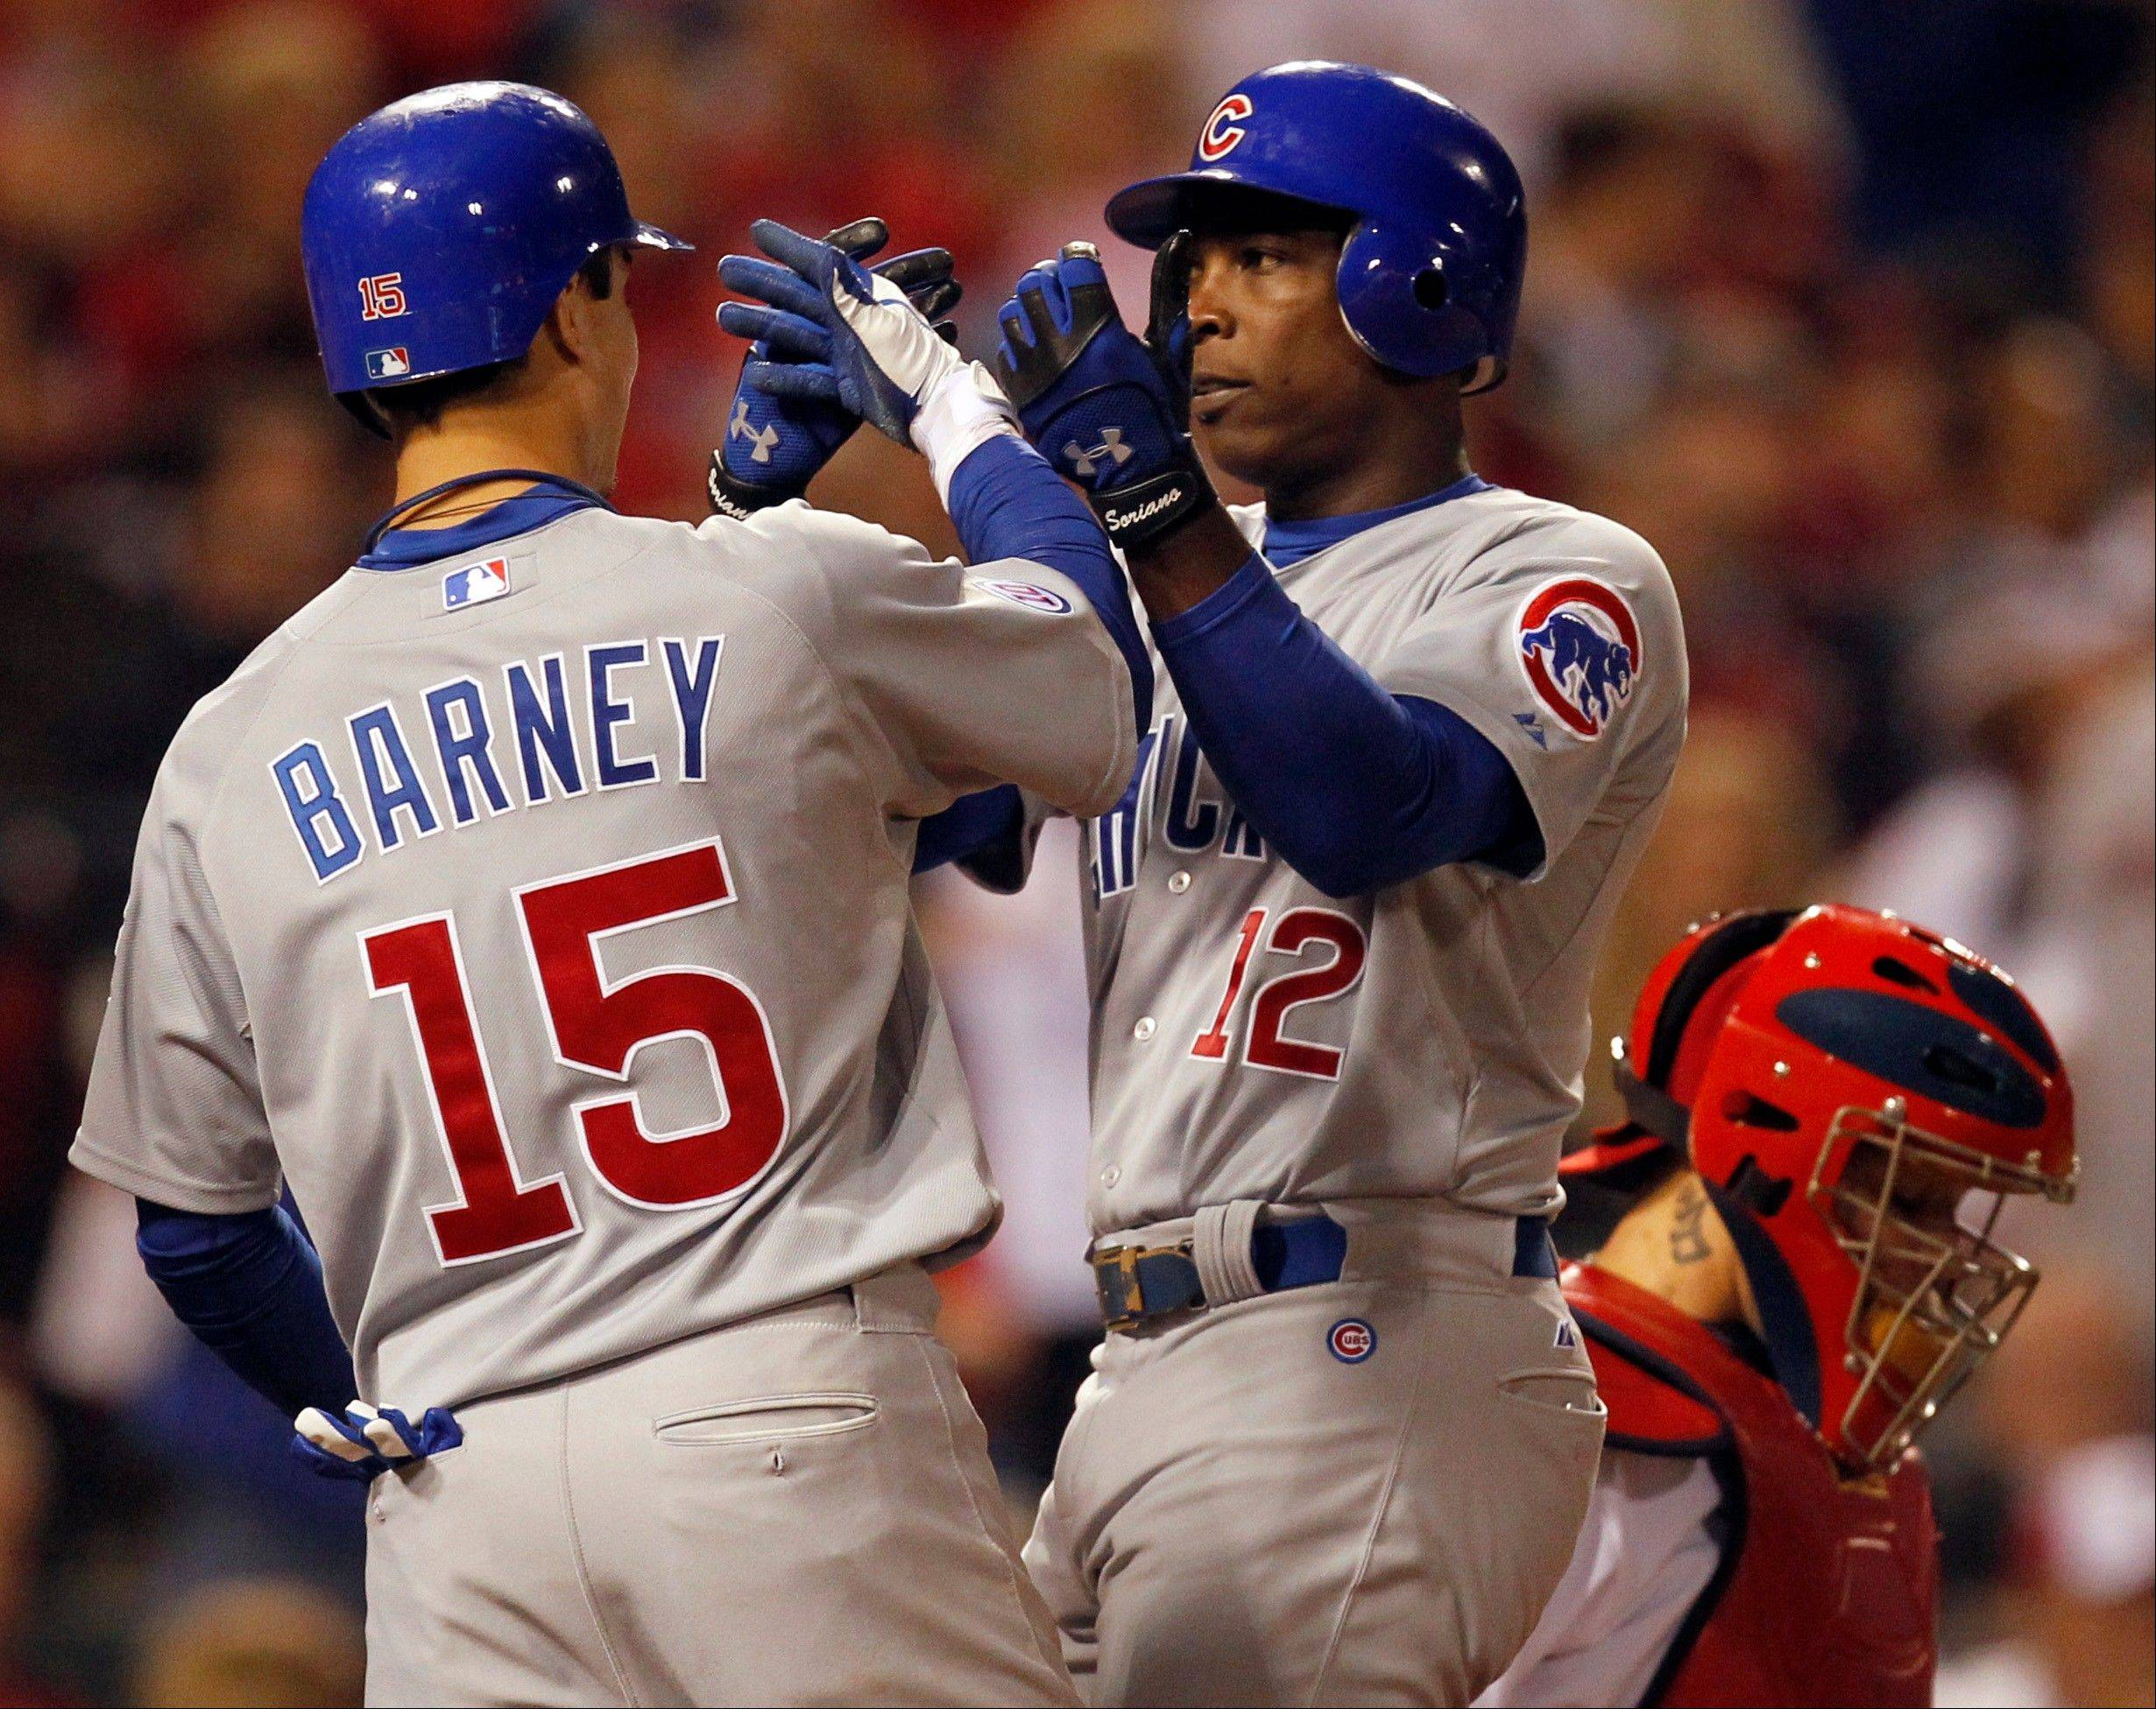 Alfonso Soriano, center, is congratulated by Darwin Barney after hitting a 3-run home run to give the Cubs a 4-1 lead in the eighth inning of their victory at St. Louis on Friday.